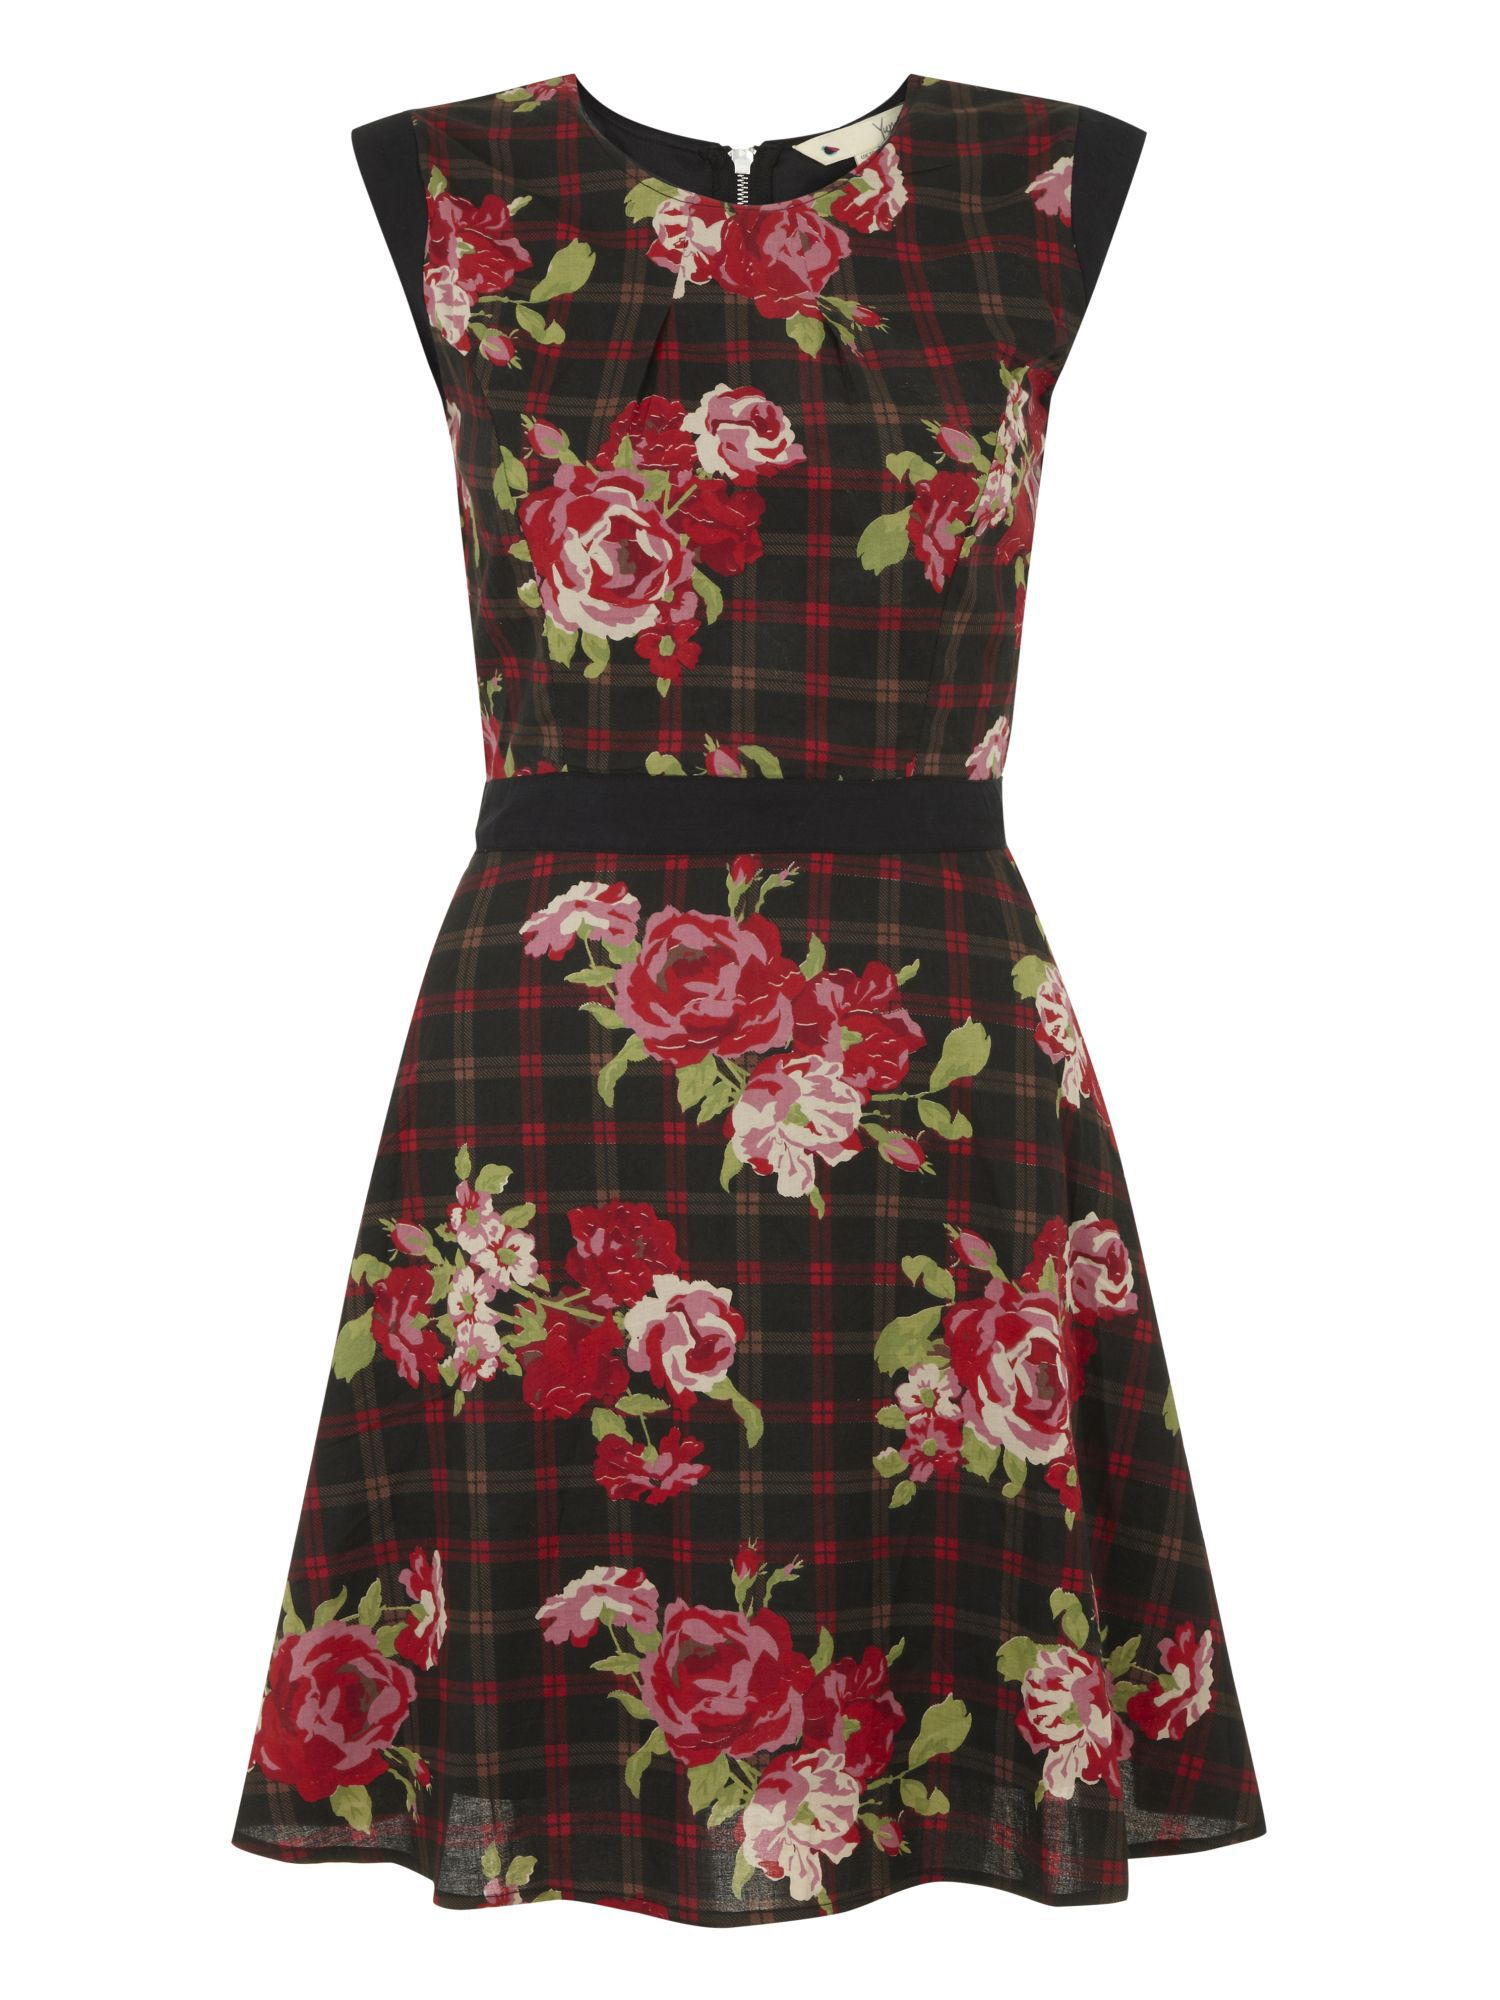 Checks and roses dress